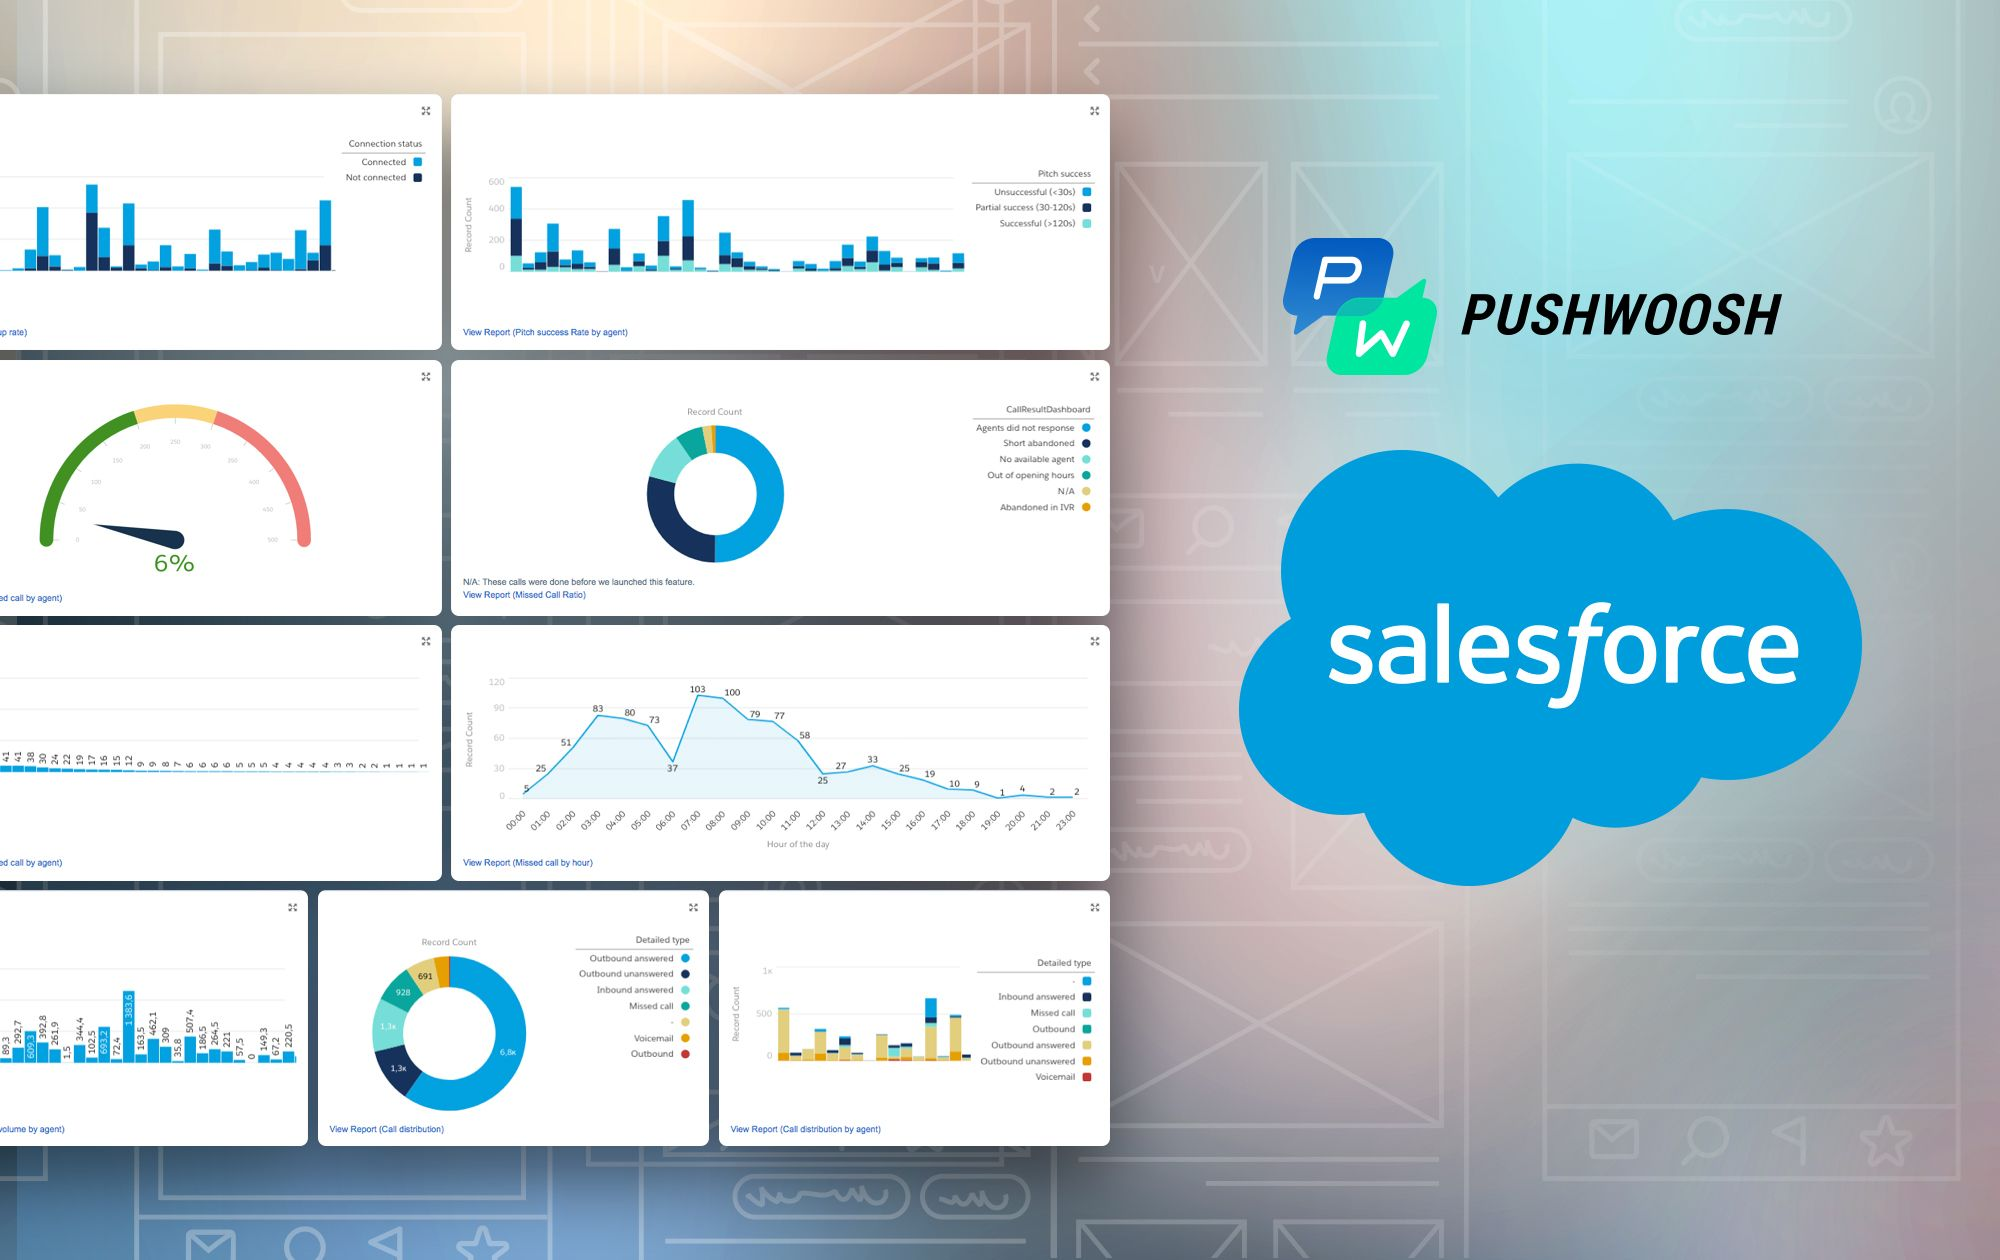 Pushwoosh + Salesforce: cost-effective and simple solutions